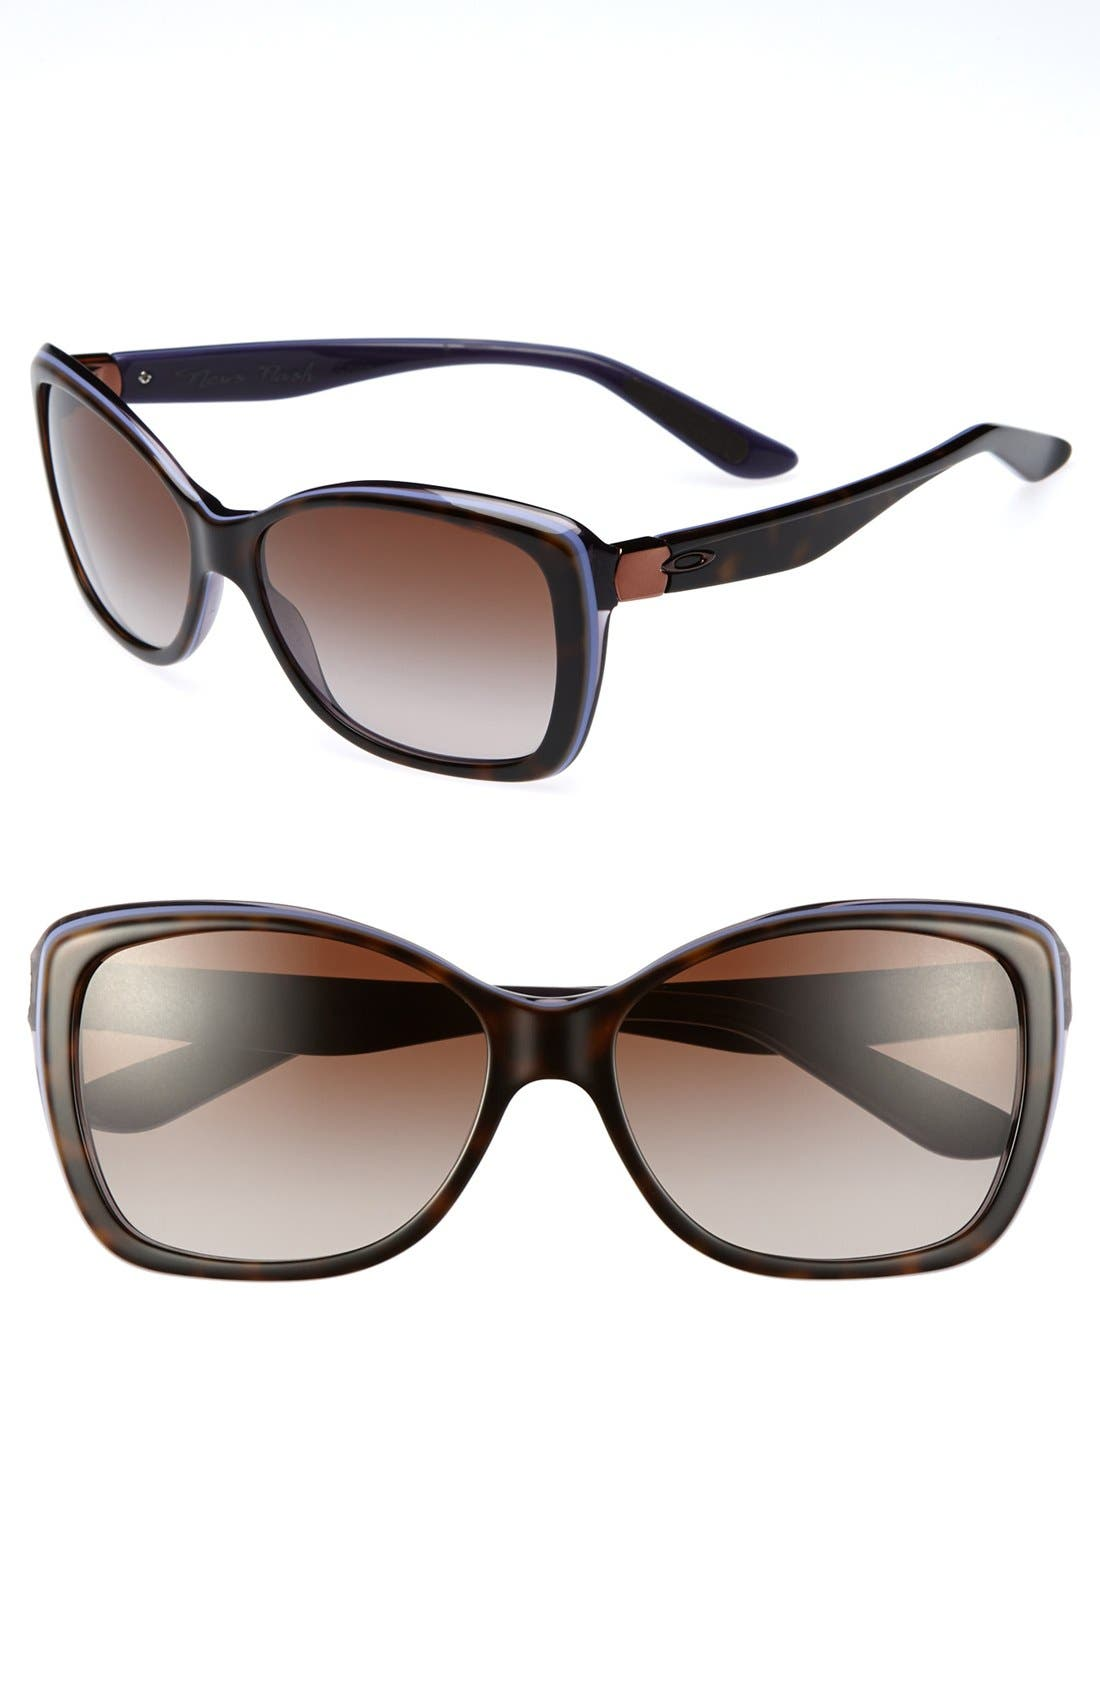 Main Image - Oakley 'News Flash' 56mm Sunglasses